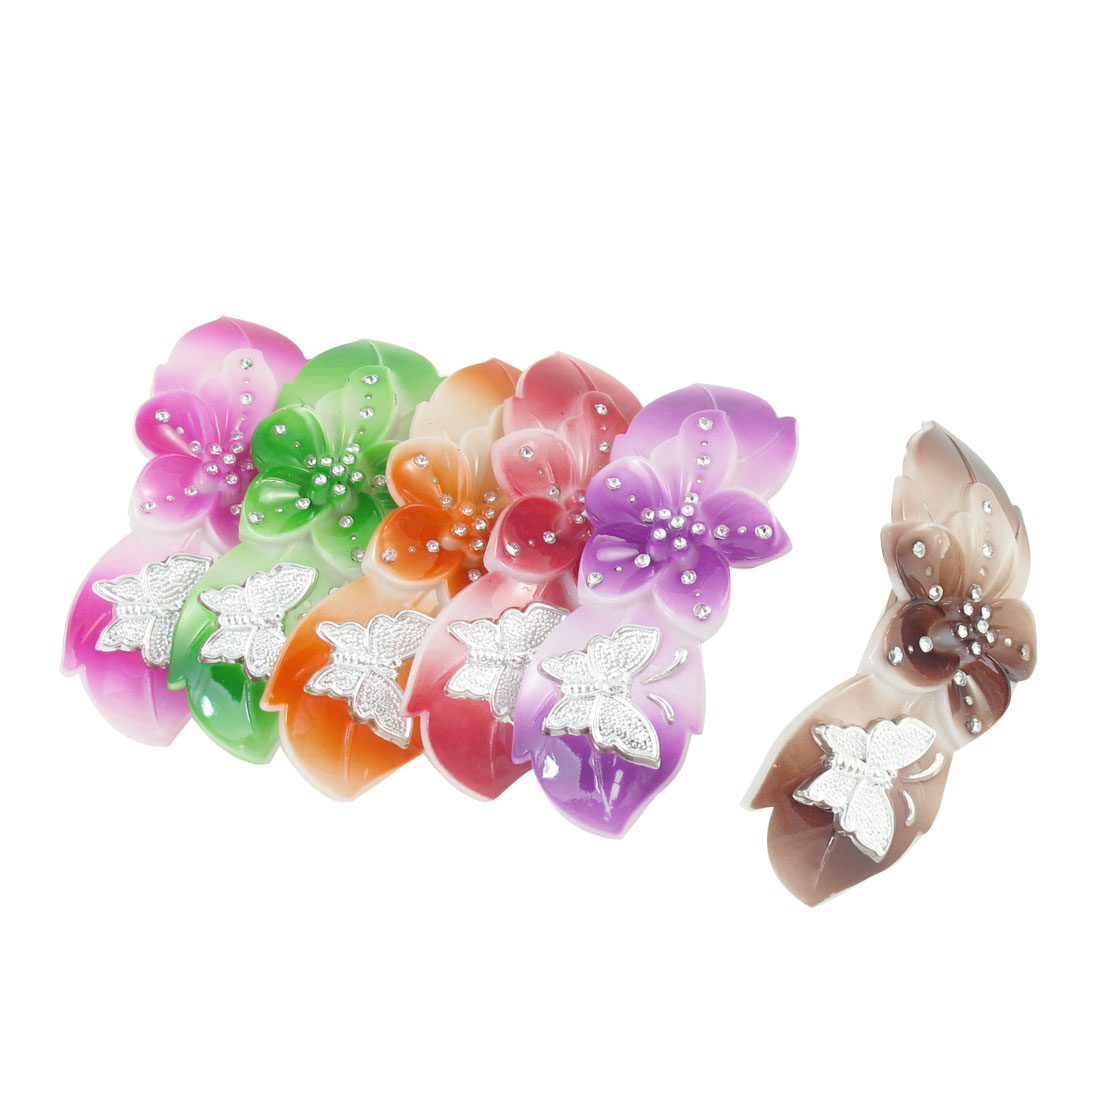 6 Pcs Rhinestone Detailing Flower Buterfly Pattern Hair Clips Green Red